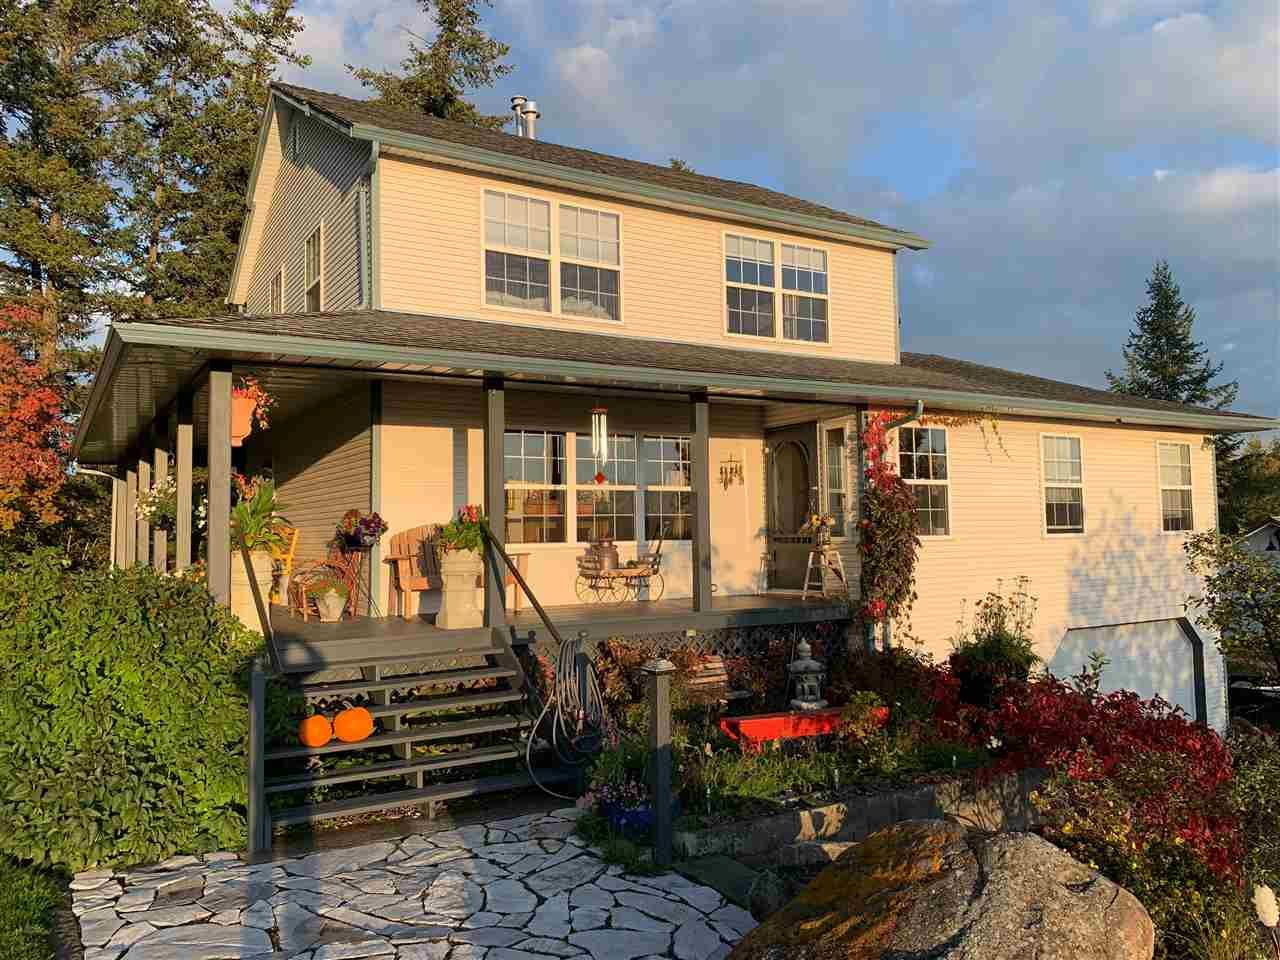 Main Photo: 3002 GOLD DIGGER Drive: 150 Mile House House for sale (Williams Lake (Zone 27))  : MLS®# R2430826